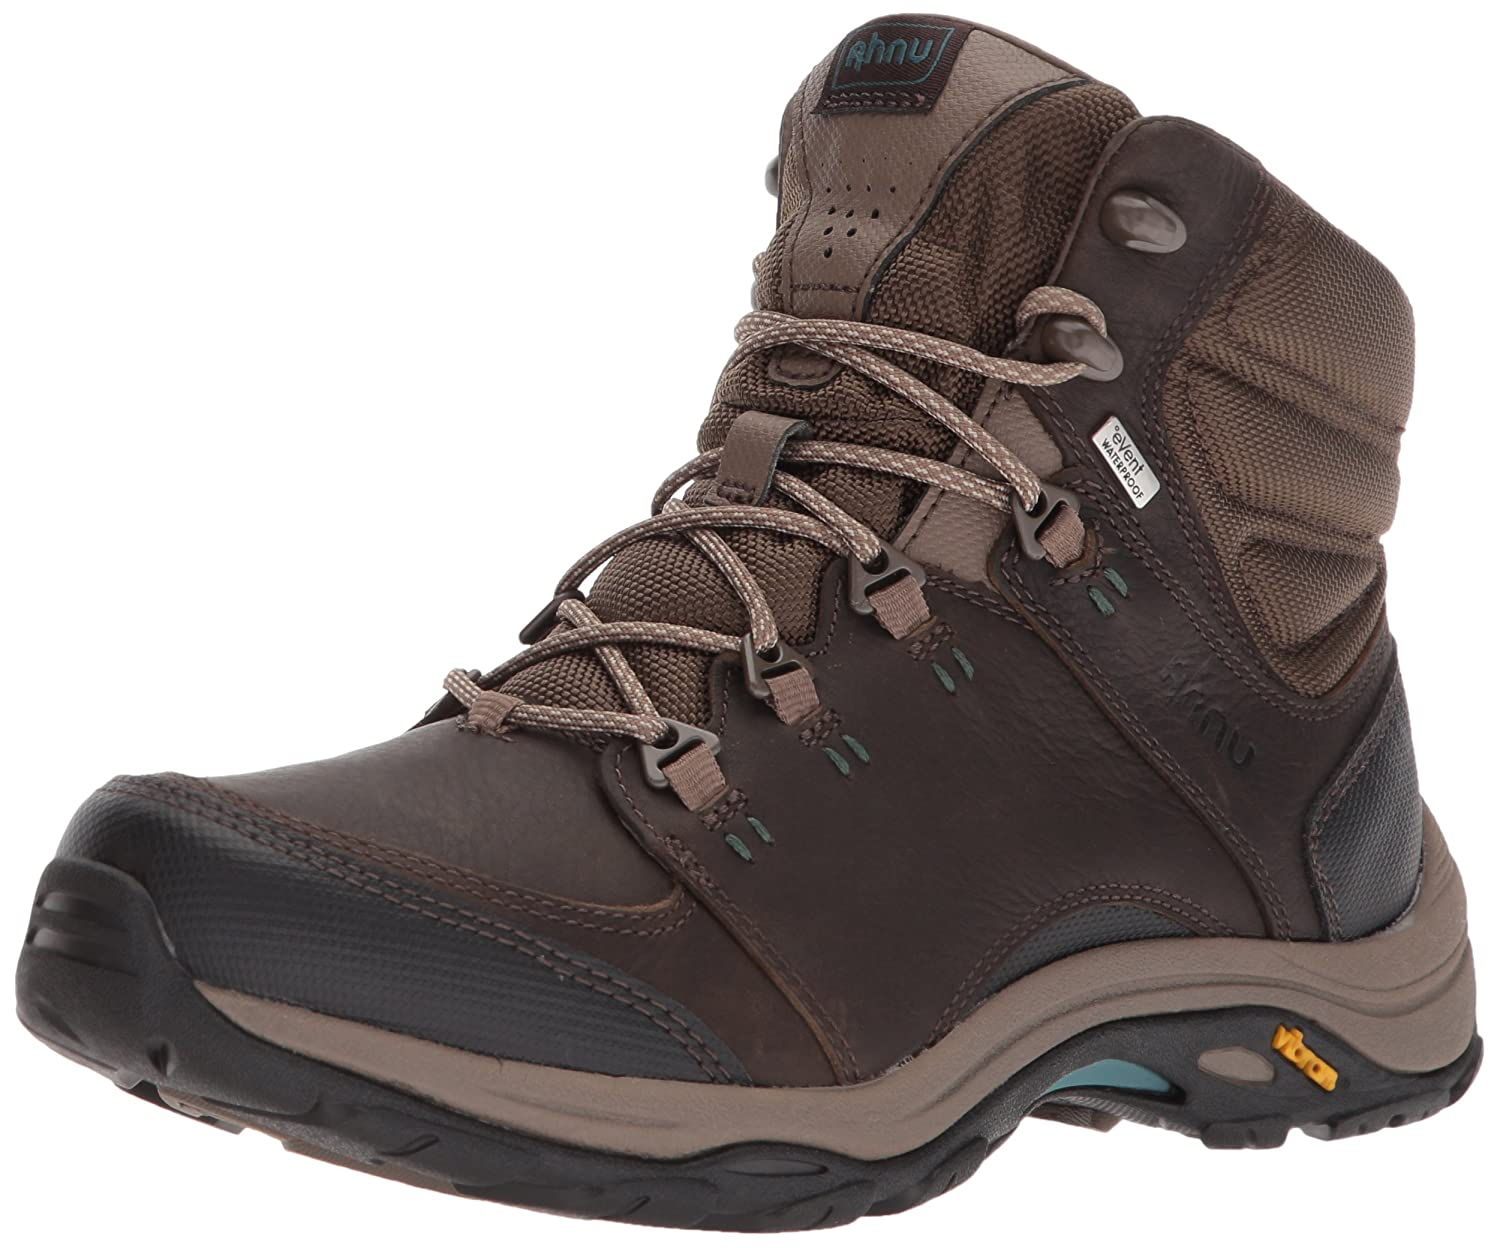 Ahnu Women's Mens Hiking Boot B071G3FDWY 10 B(M) US|Dark Brown